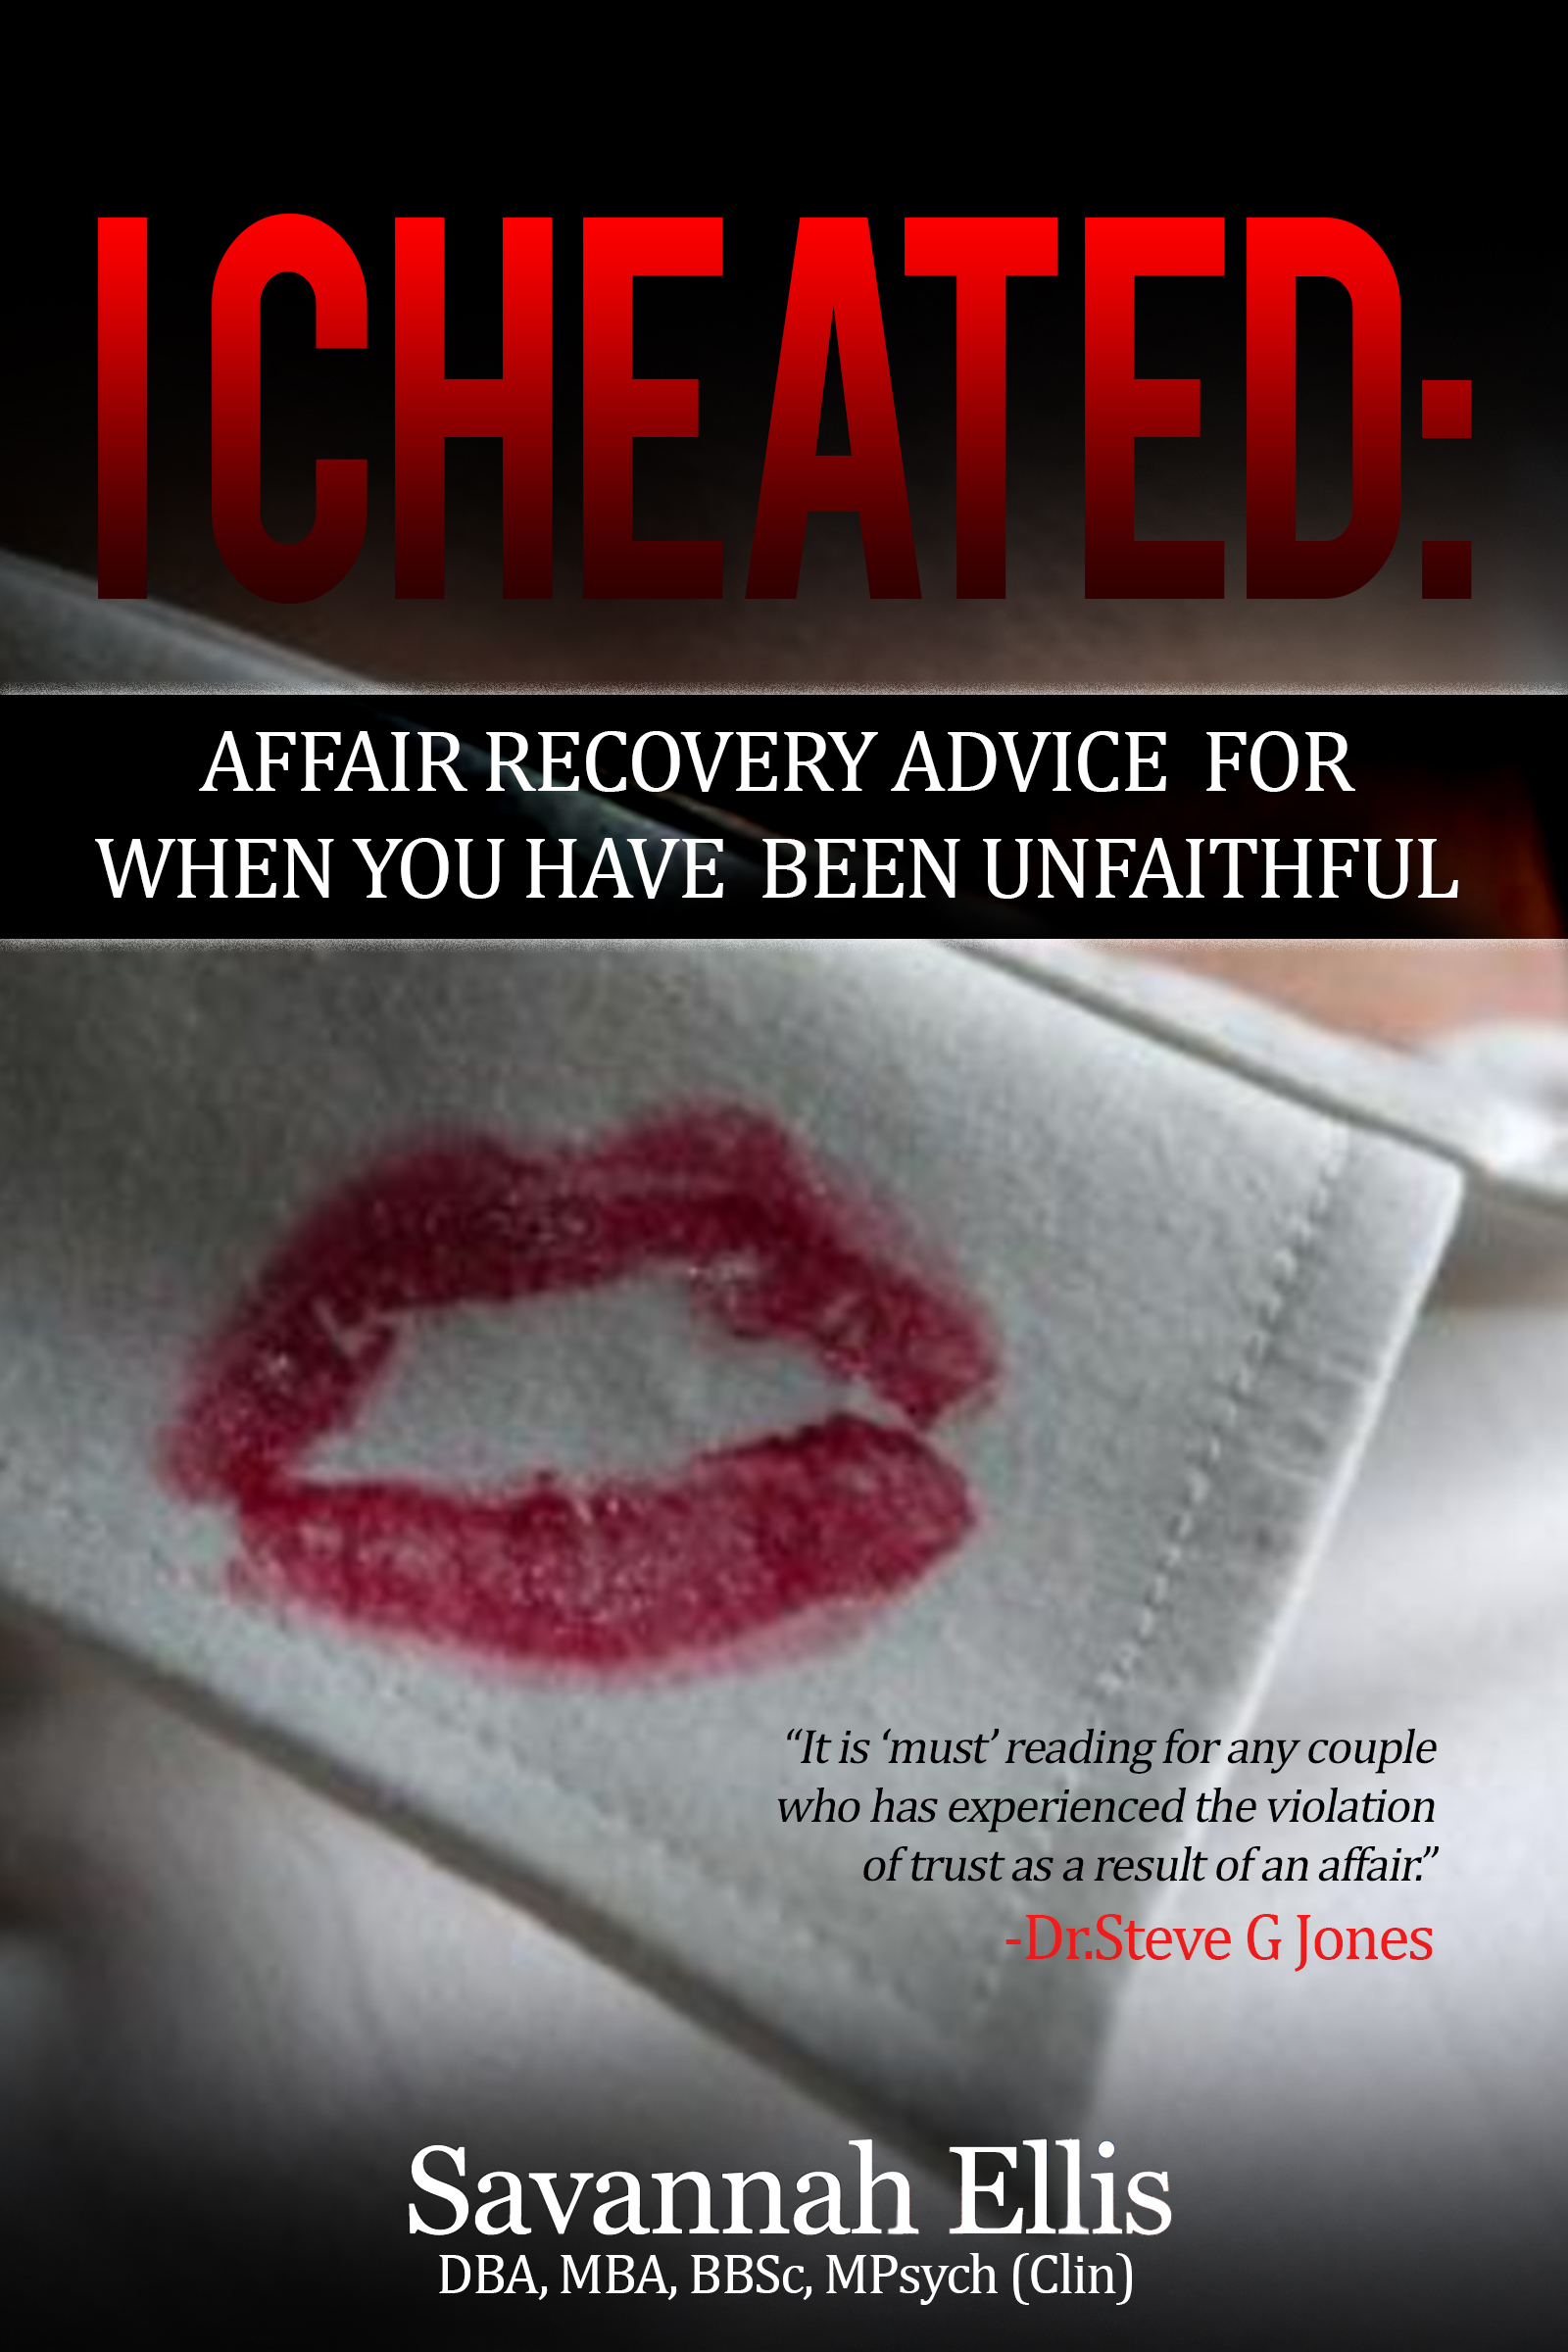 I Cheated:Affair Recovery Advice For When You Have Been Unfaithful, an  Ebook by Savannah Ellis